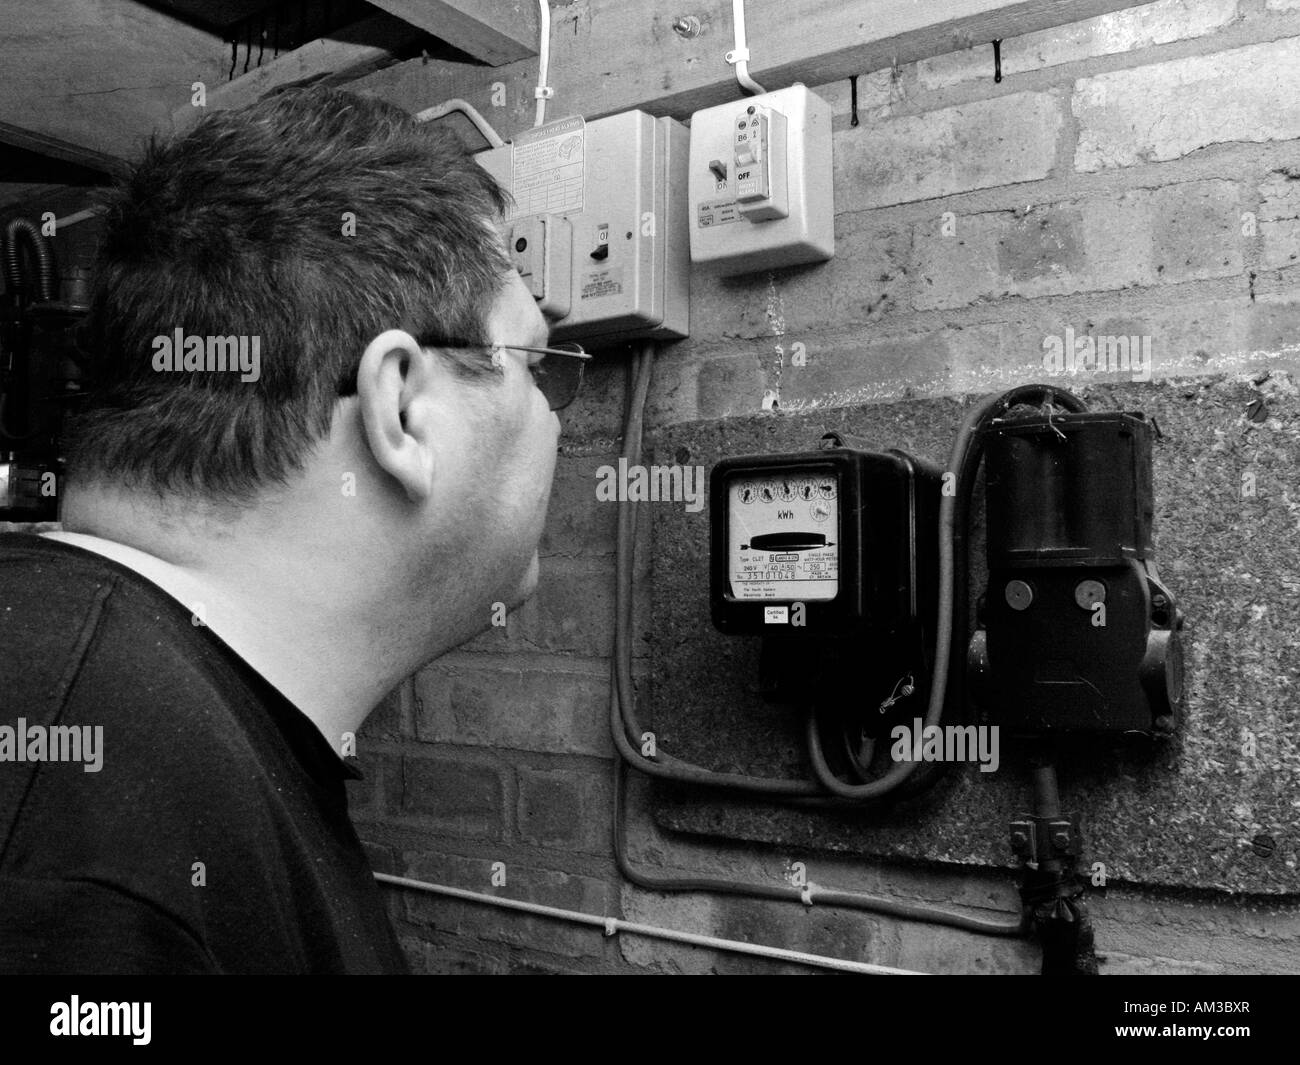 man reading and checking electric meter in garage - Stock Image